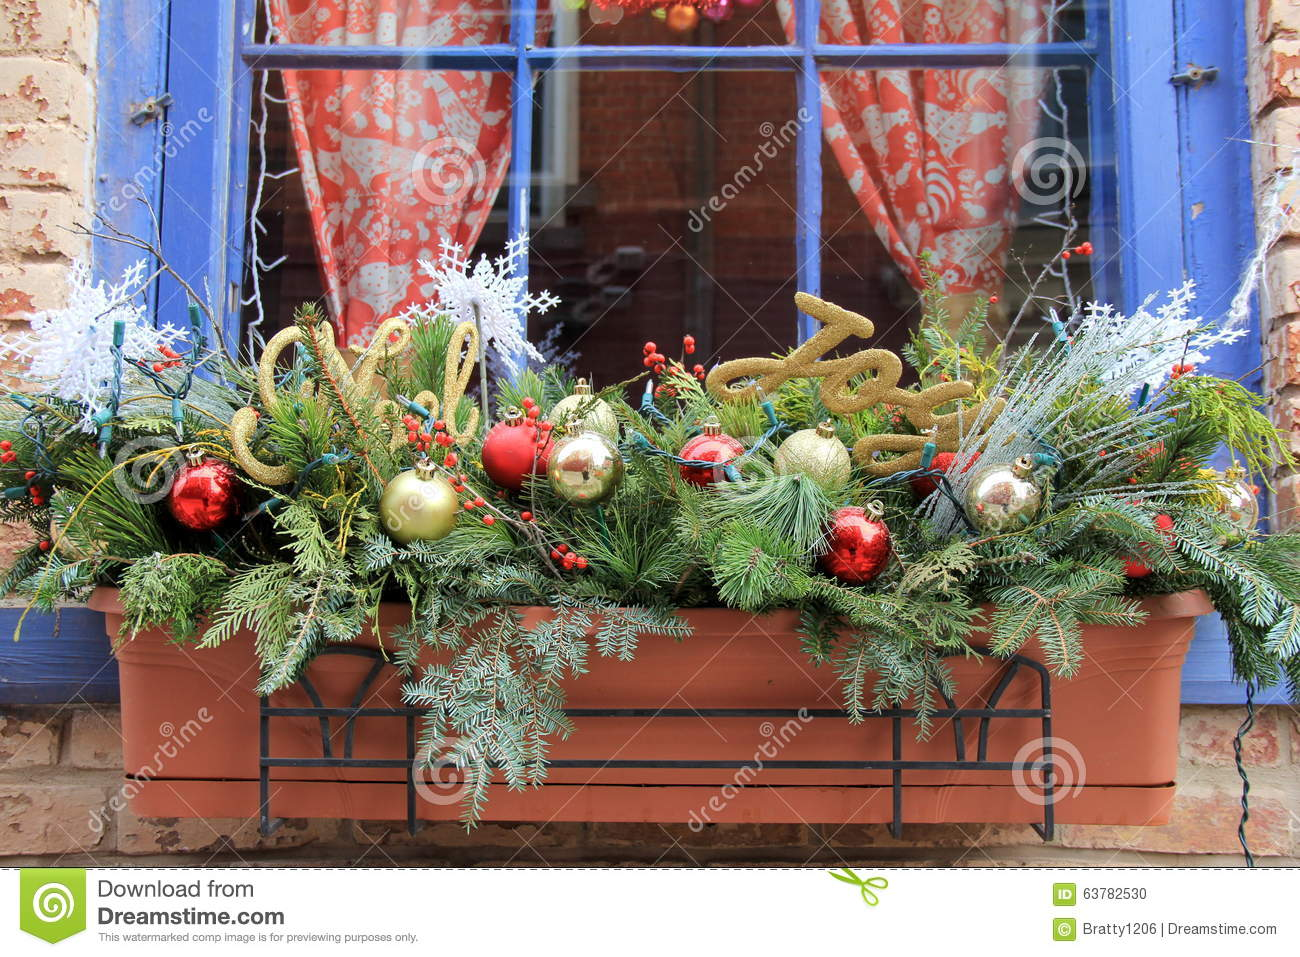 pretty holiday window box with christmas ornaments and greenery attached to colorful blue trimmed window of brick home